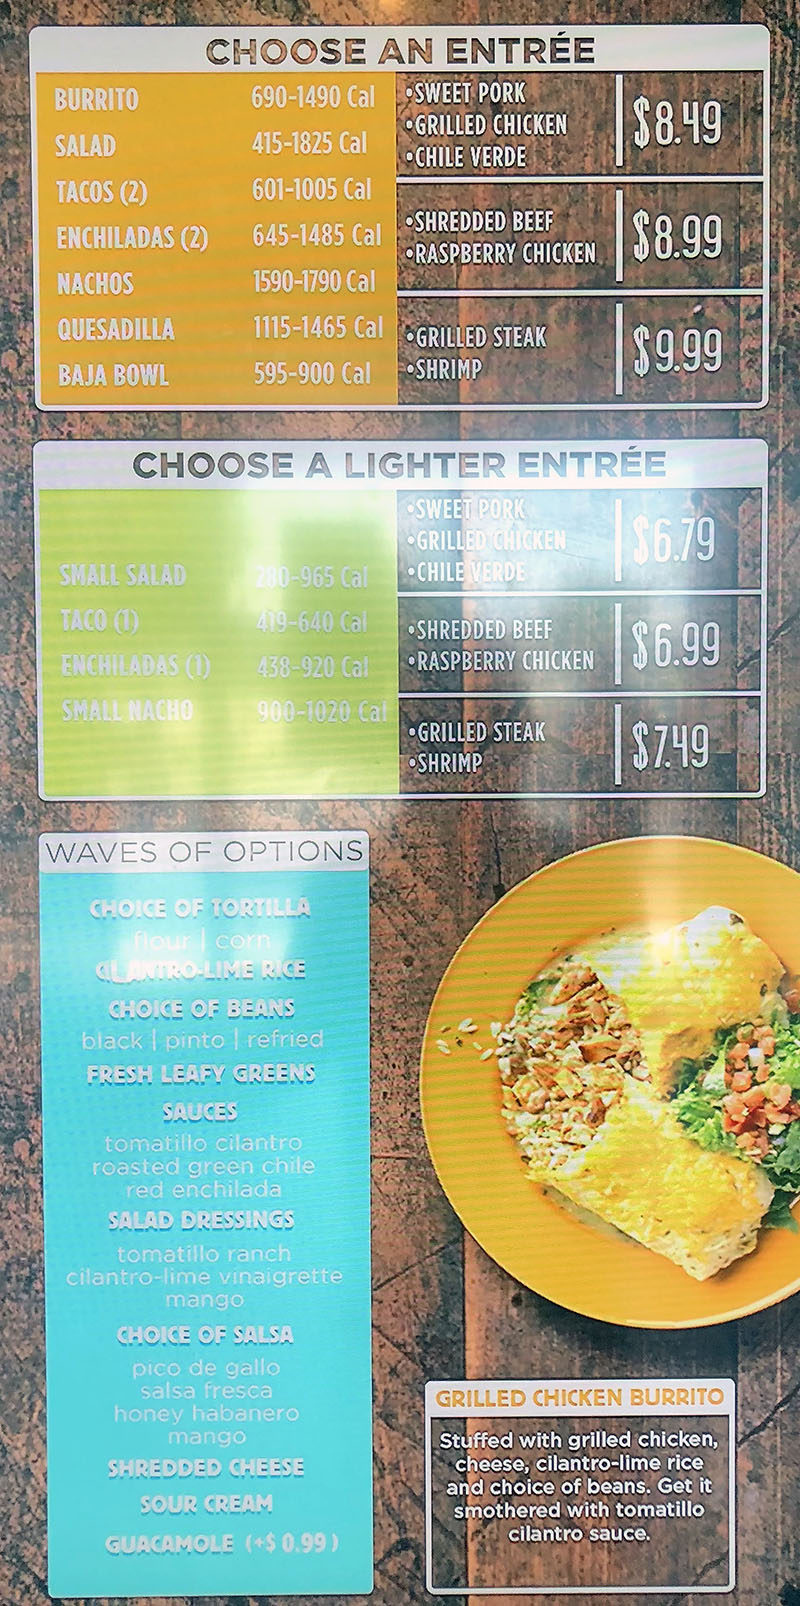 Costa Vida menu - choose entree